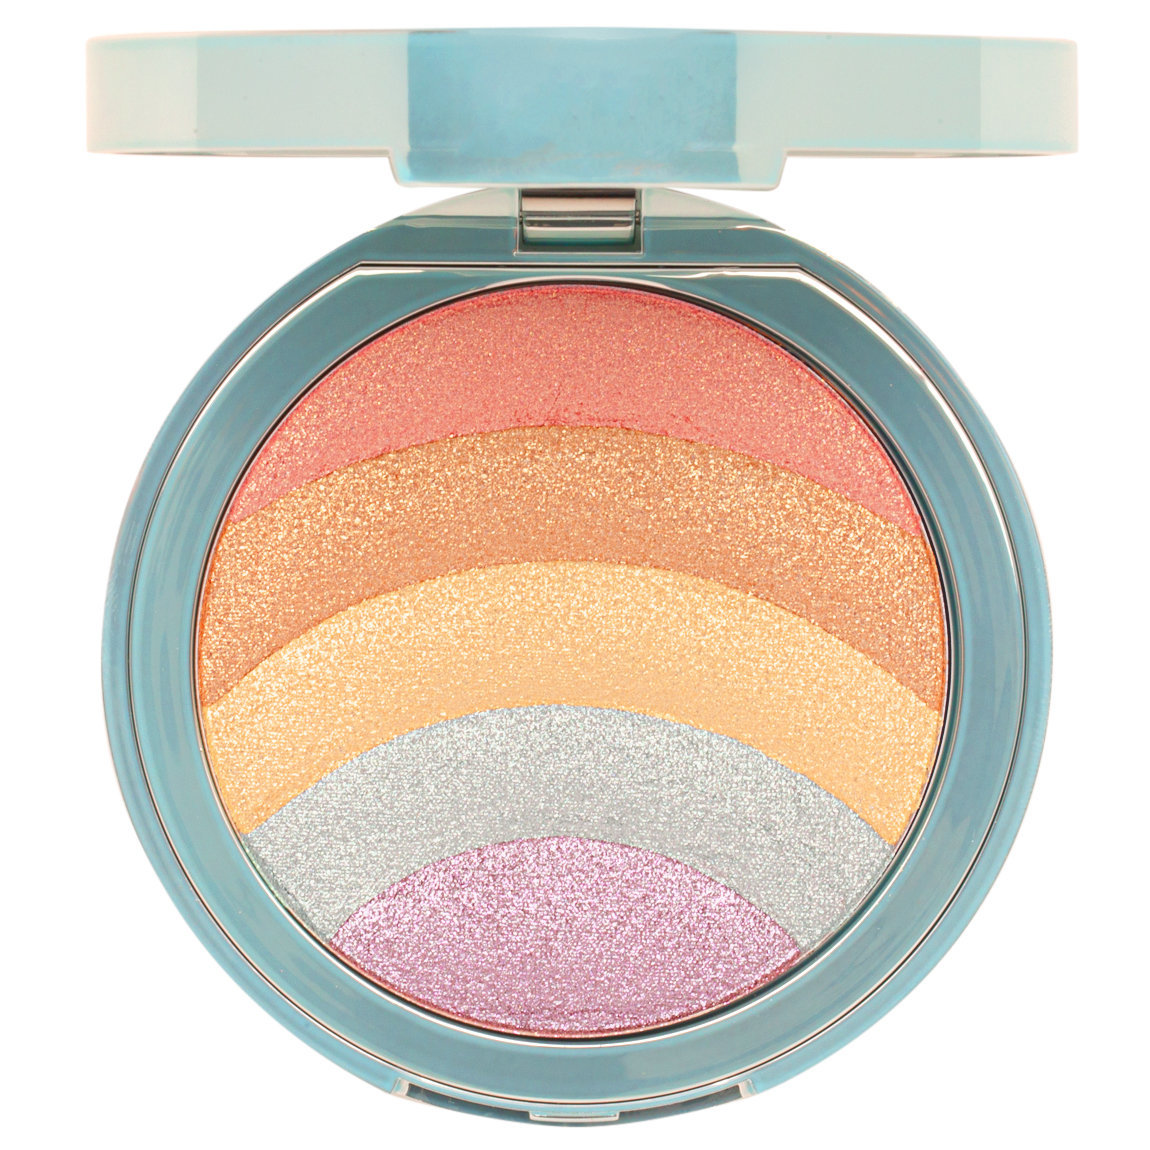 Too Faced Rainbow Strobe Highlighter product smear.